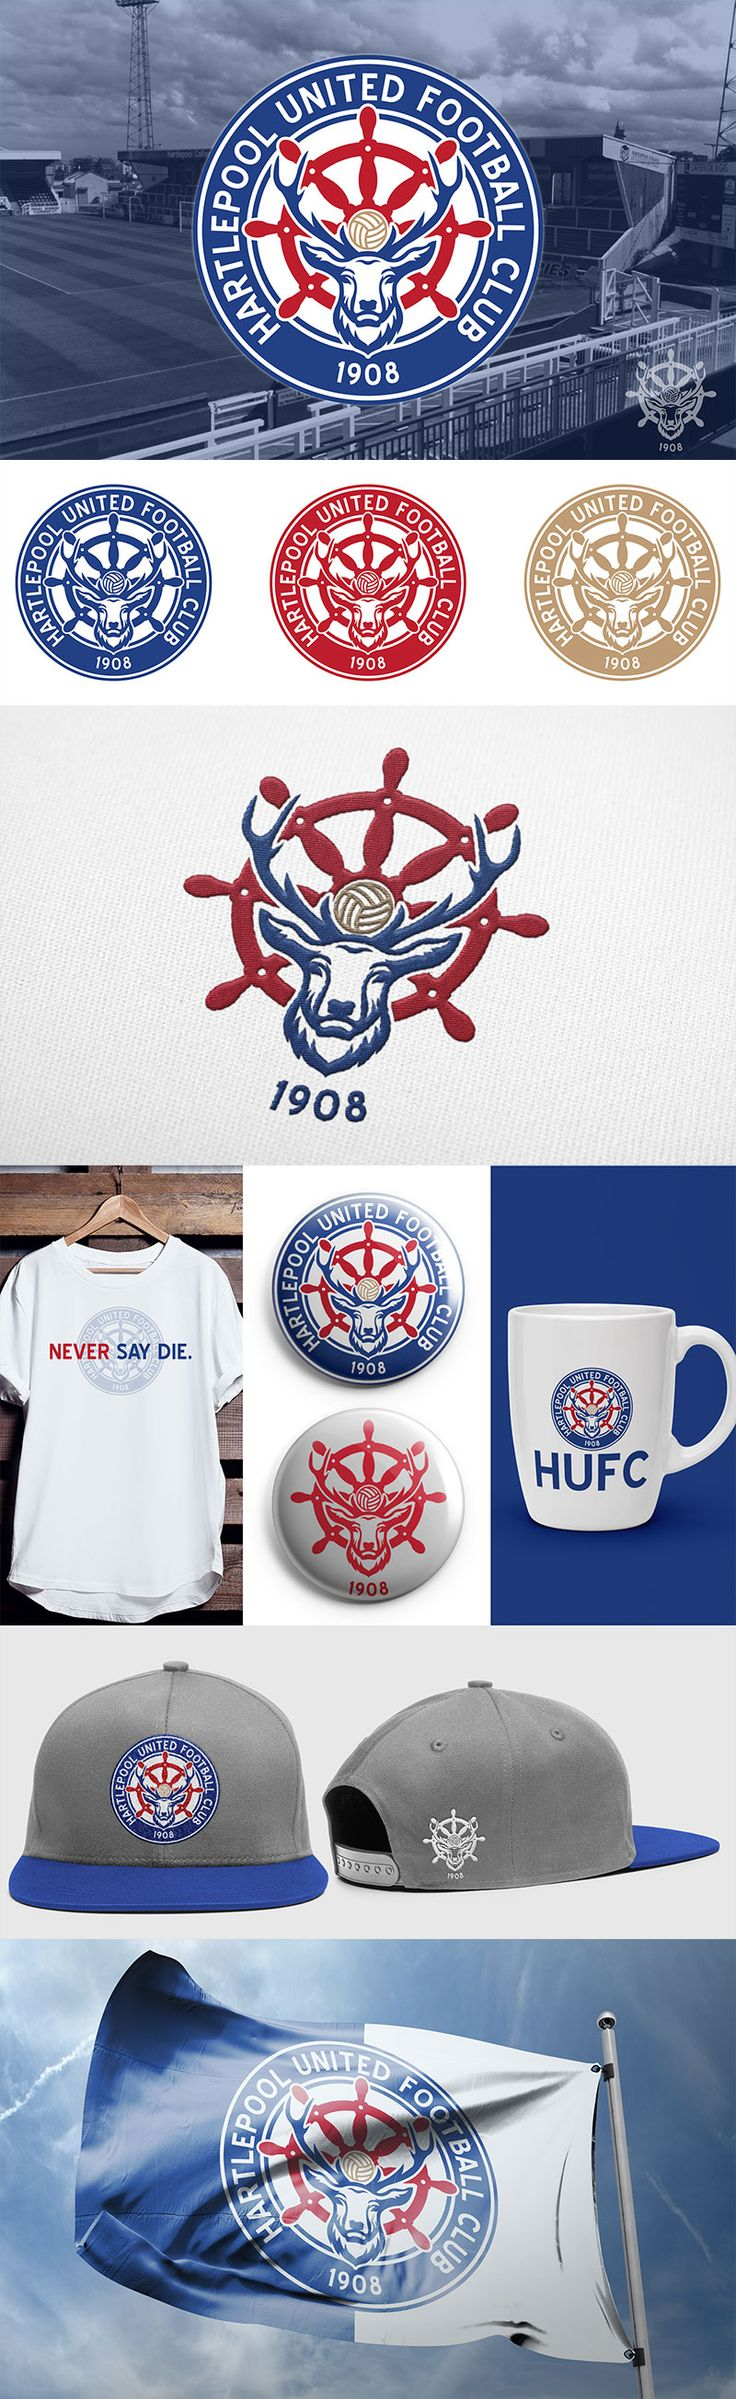 Hartlepool United FC - Crest Concept by Nick Budrewicz